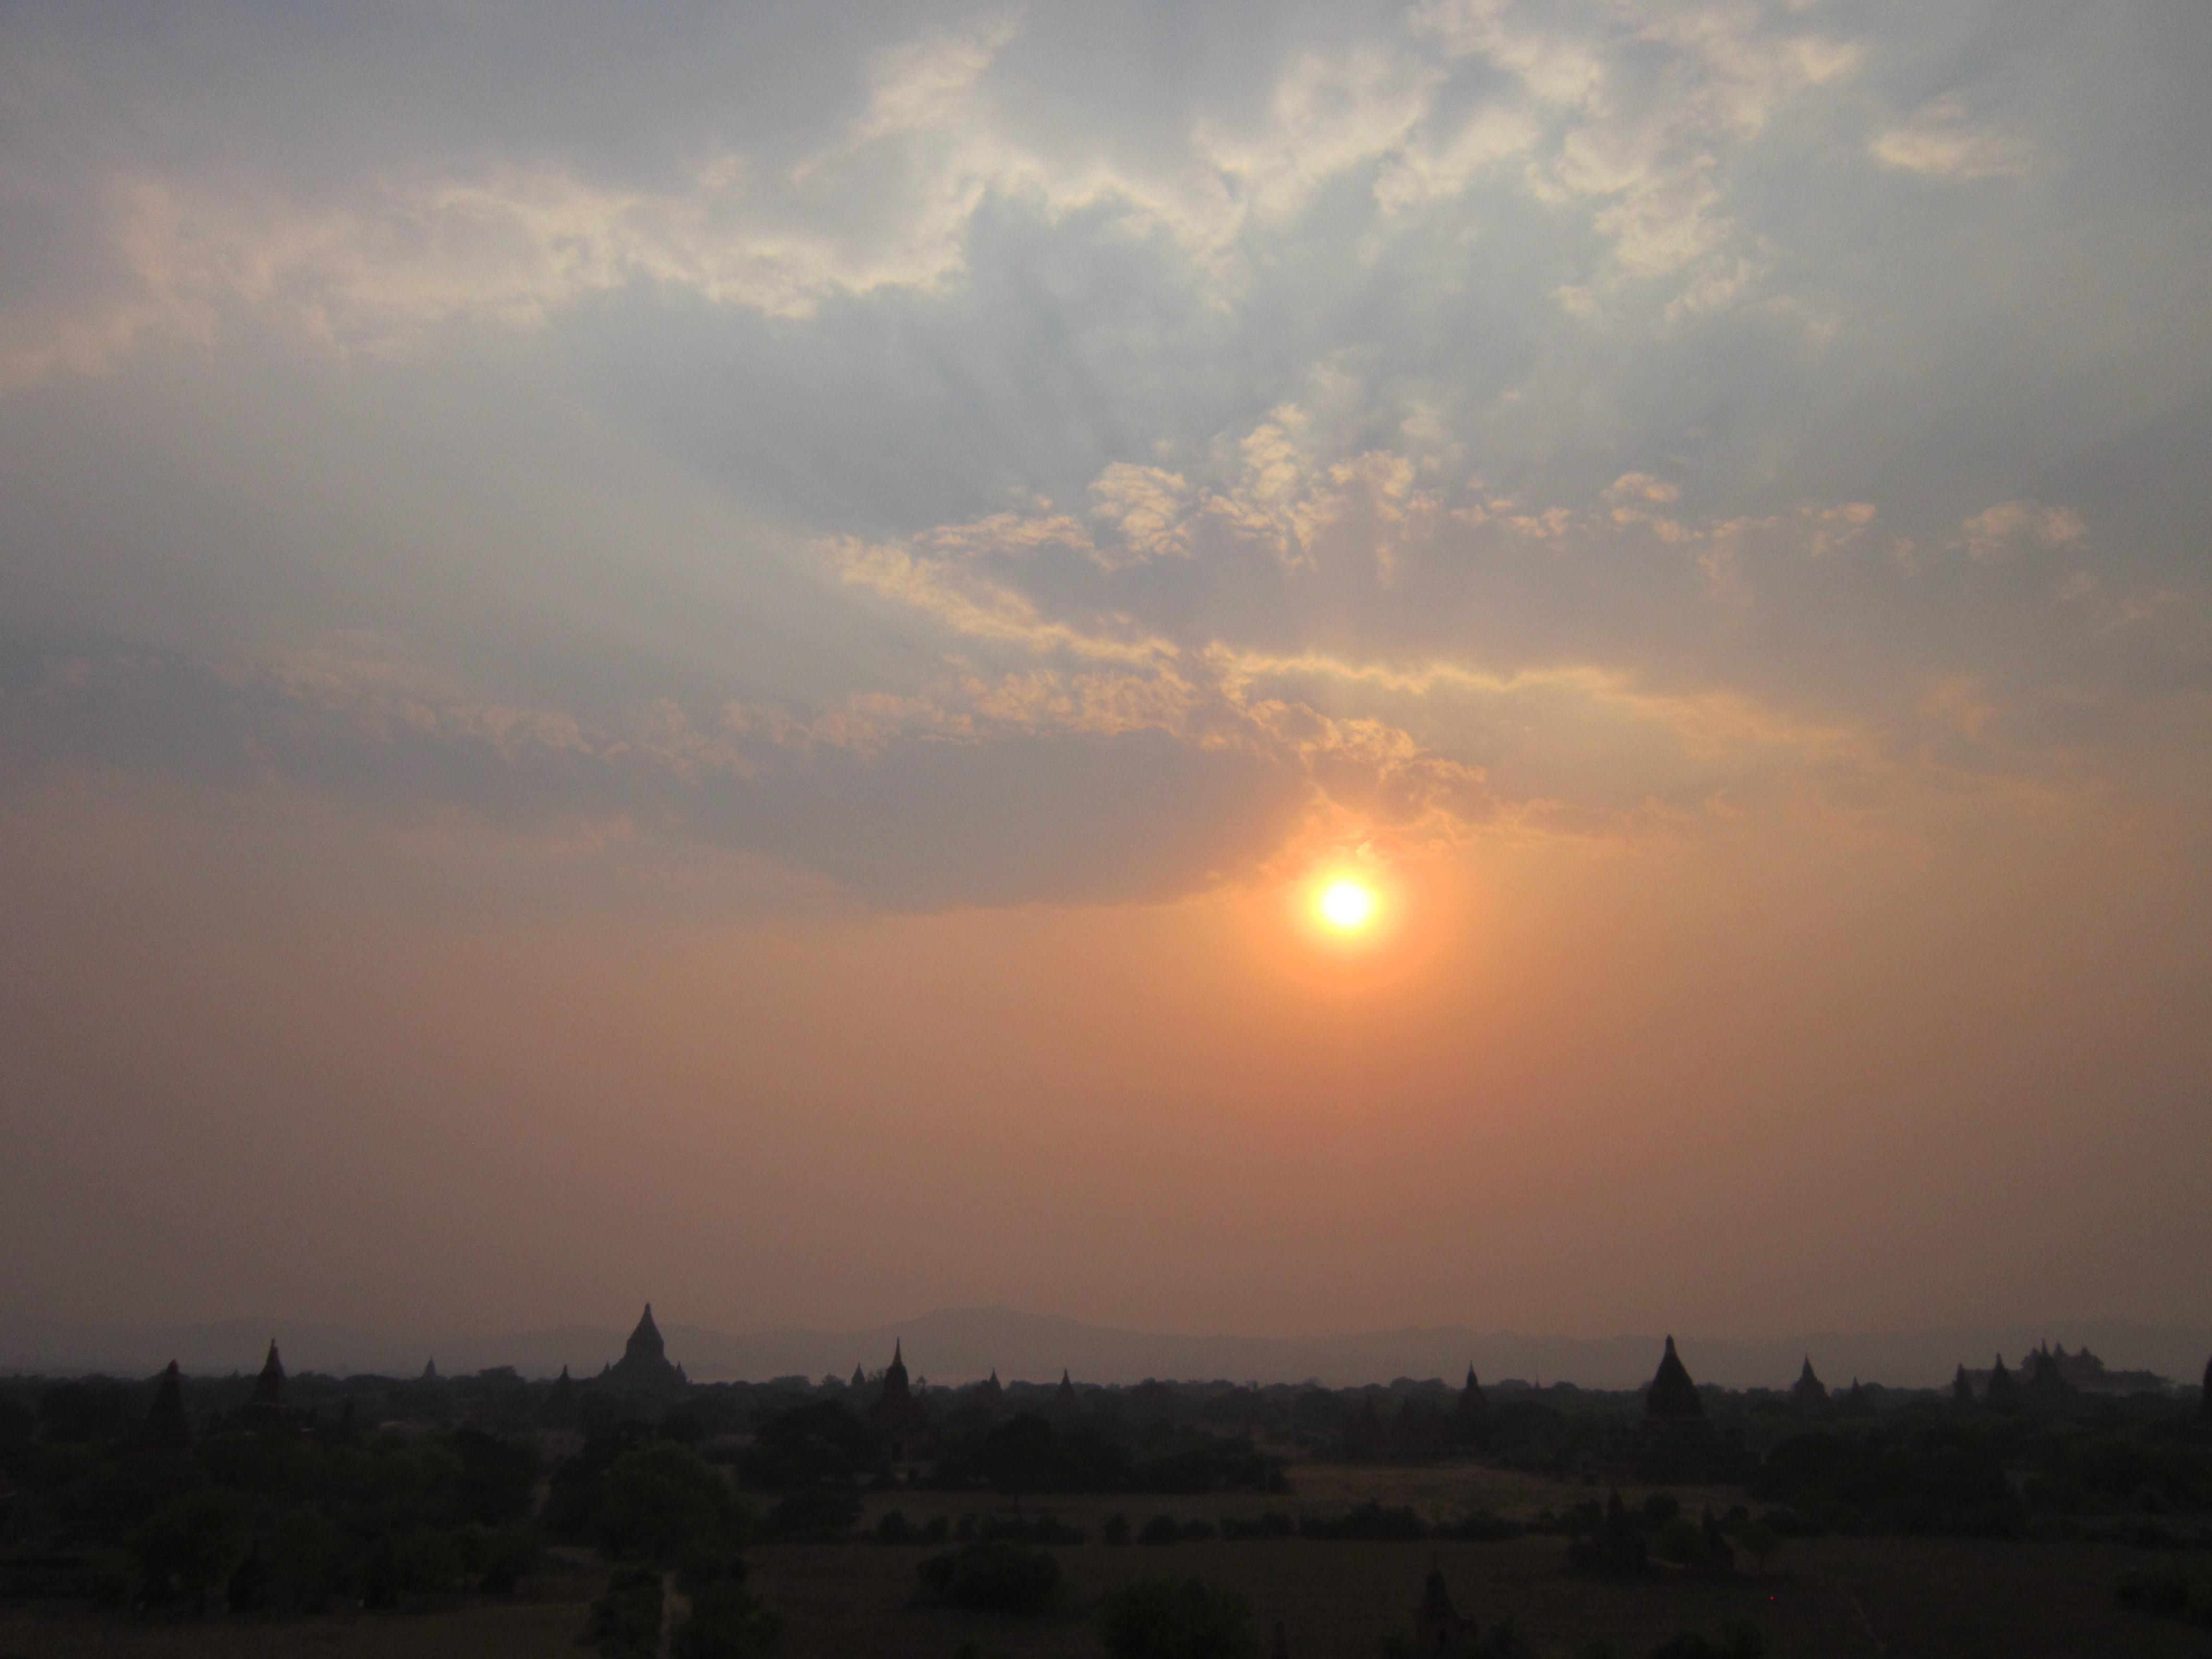 Sunset overlooking the Temples of Bagan